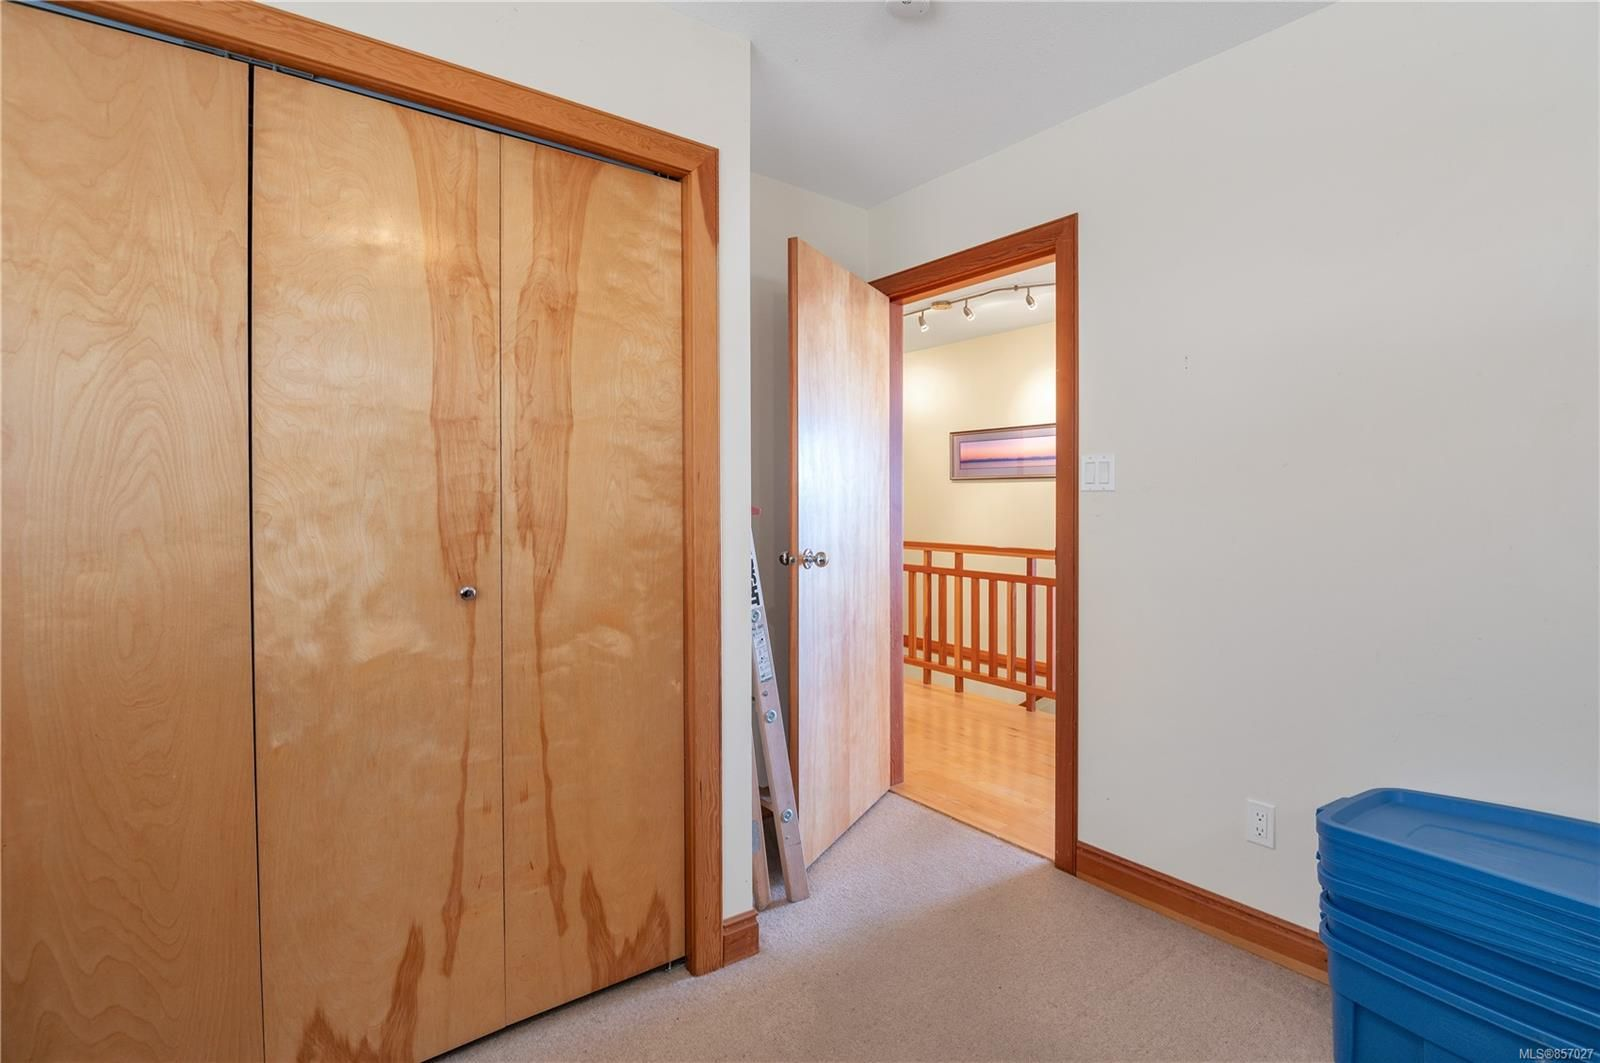 Photo 19: Photos: 253 S Alder St in : CR Campbell River South House for sale (Campbell River)  : MLS®# 857027